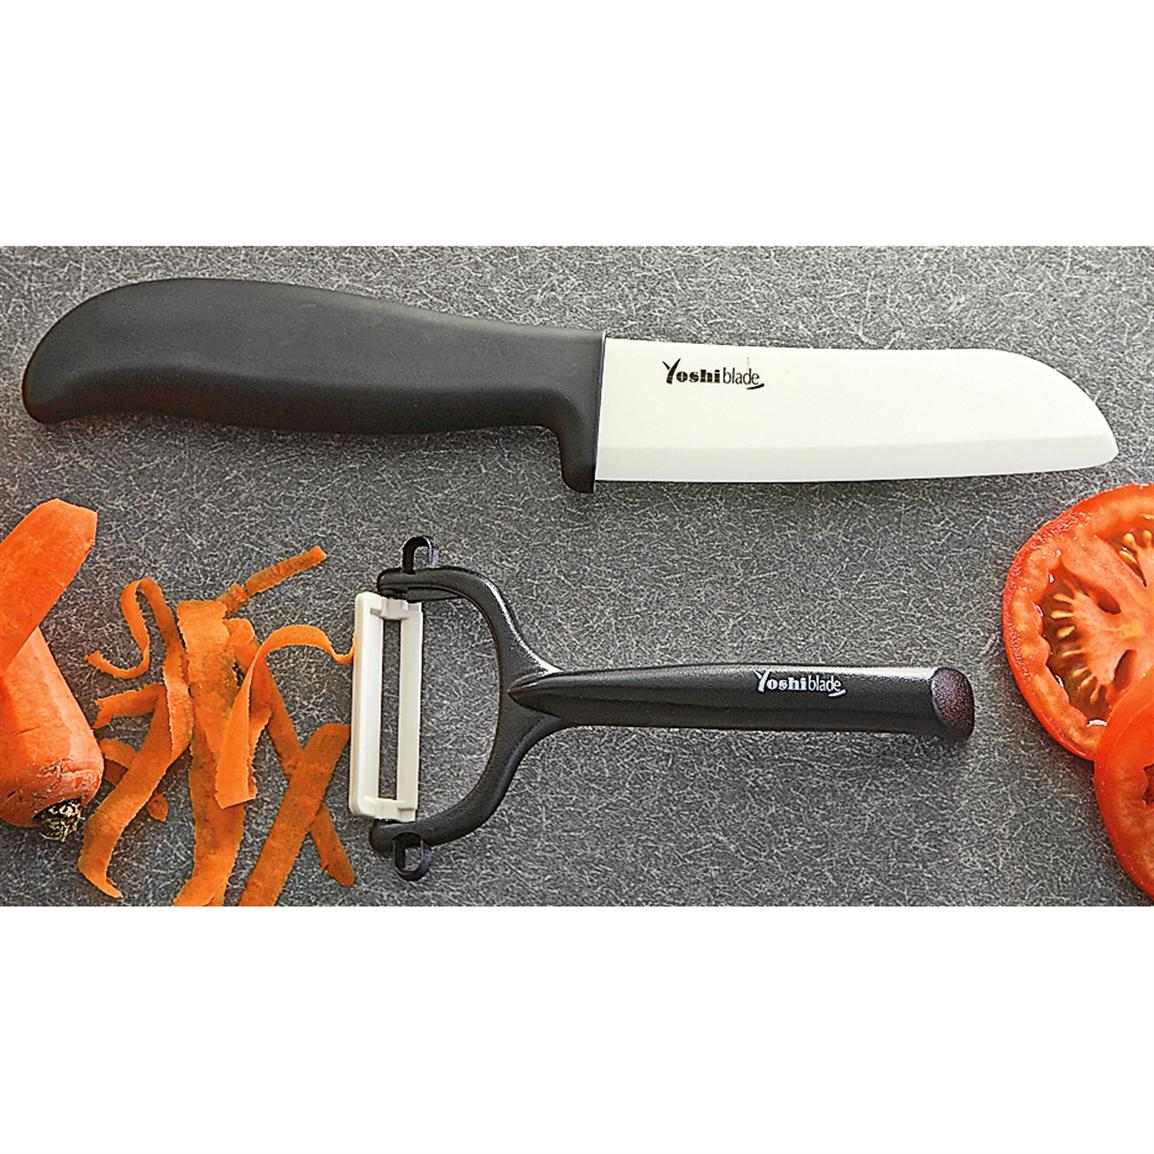 2 Pc Yoshi 174 Blade Ceramic Kitchen Knife And Peeler Set